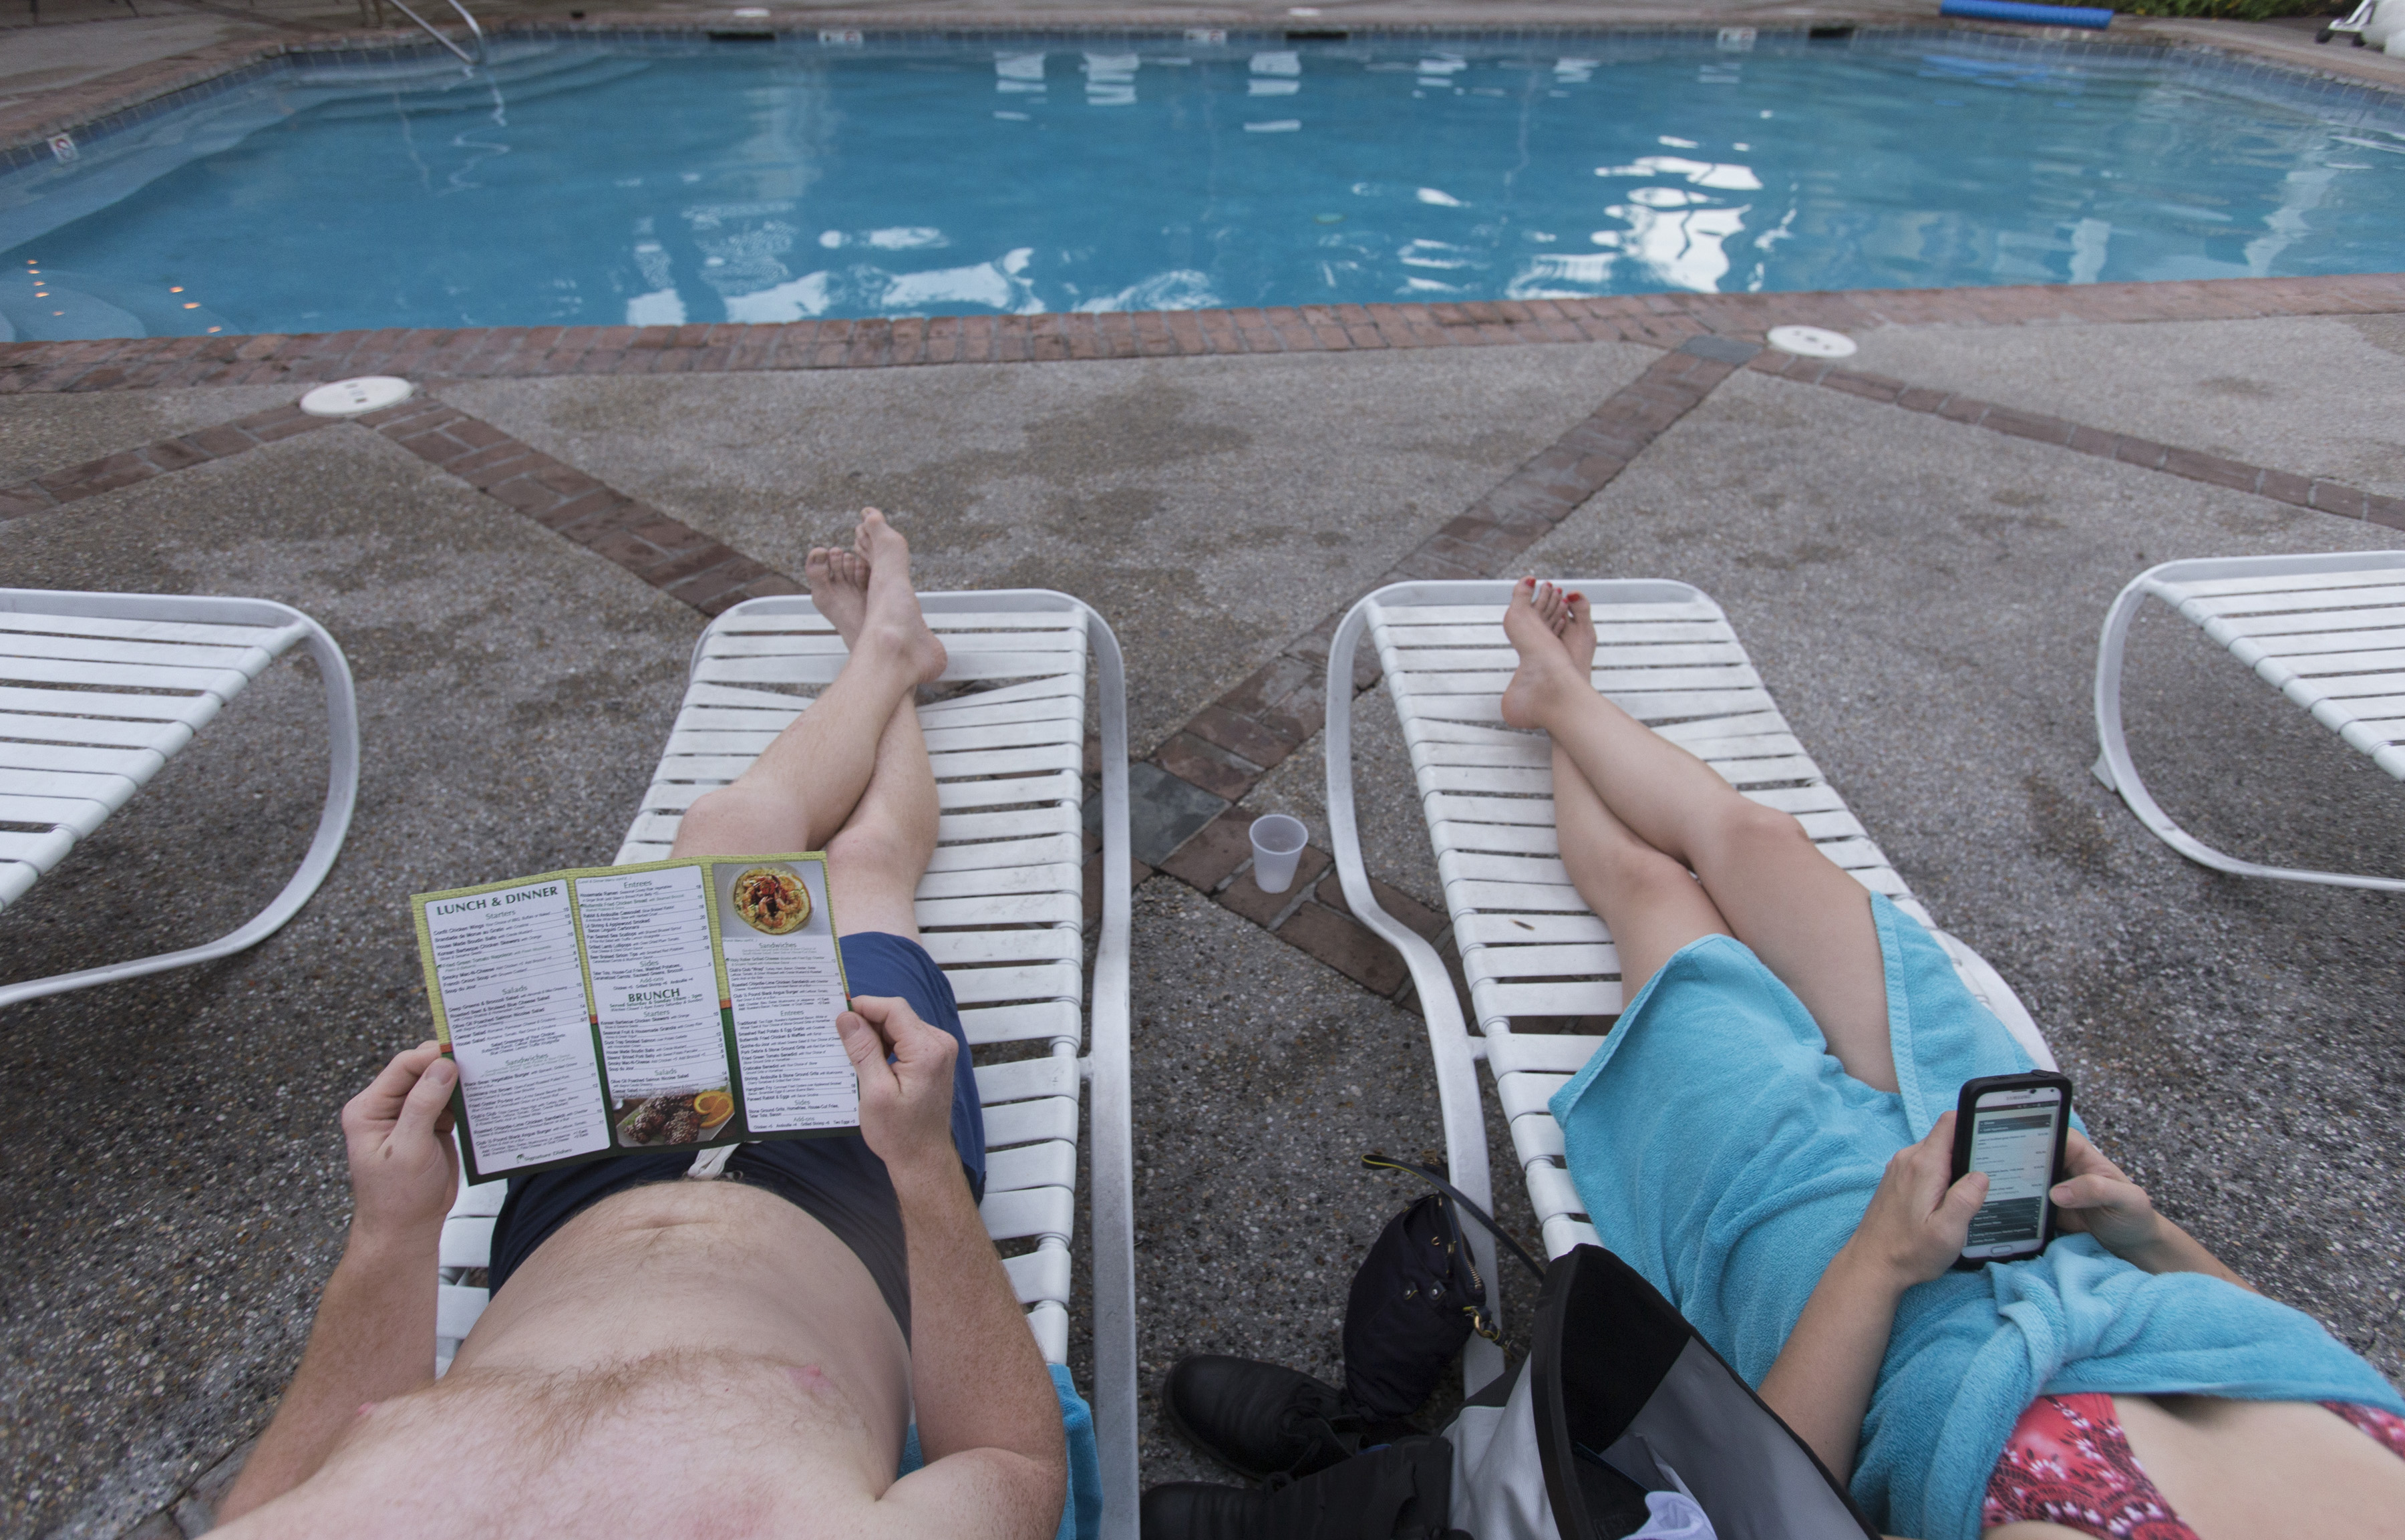 A couple lounges on deck chairs by the pool at the Country Club in New Orleans